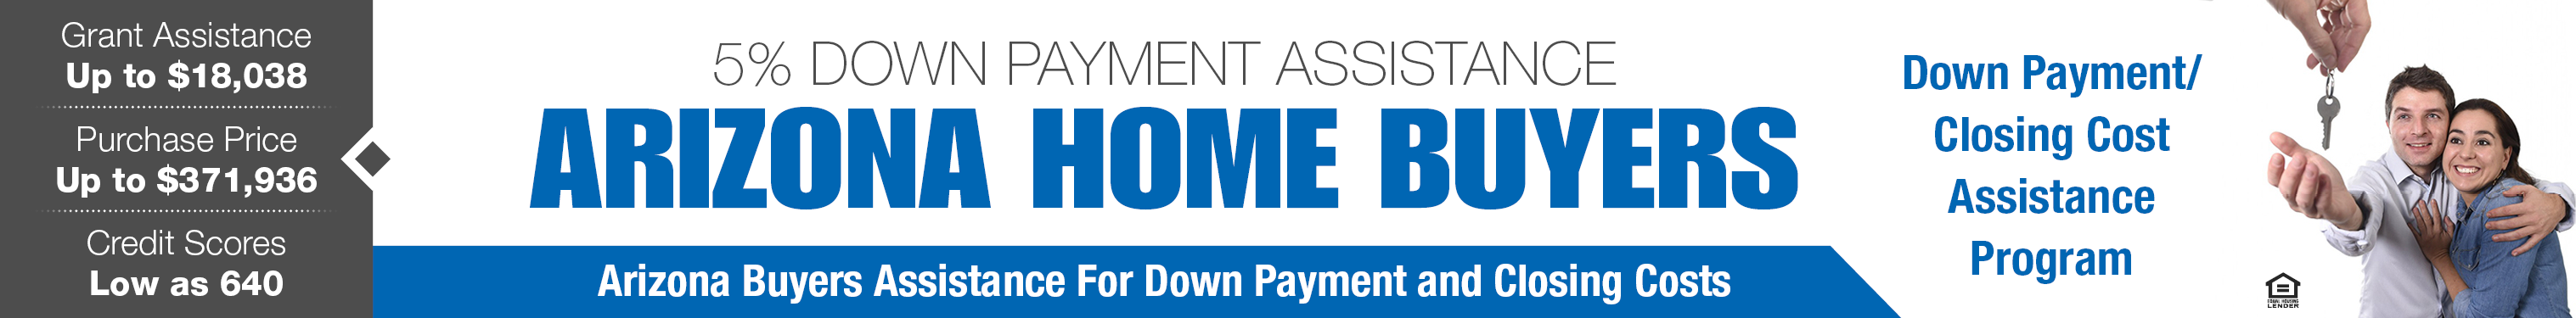 Arizona Down Payment Assistance